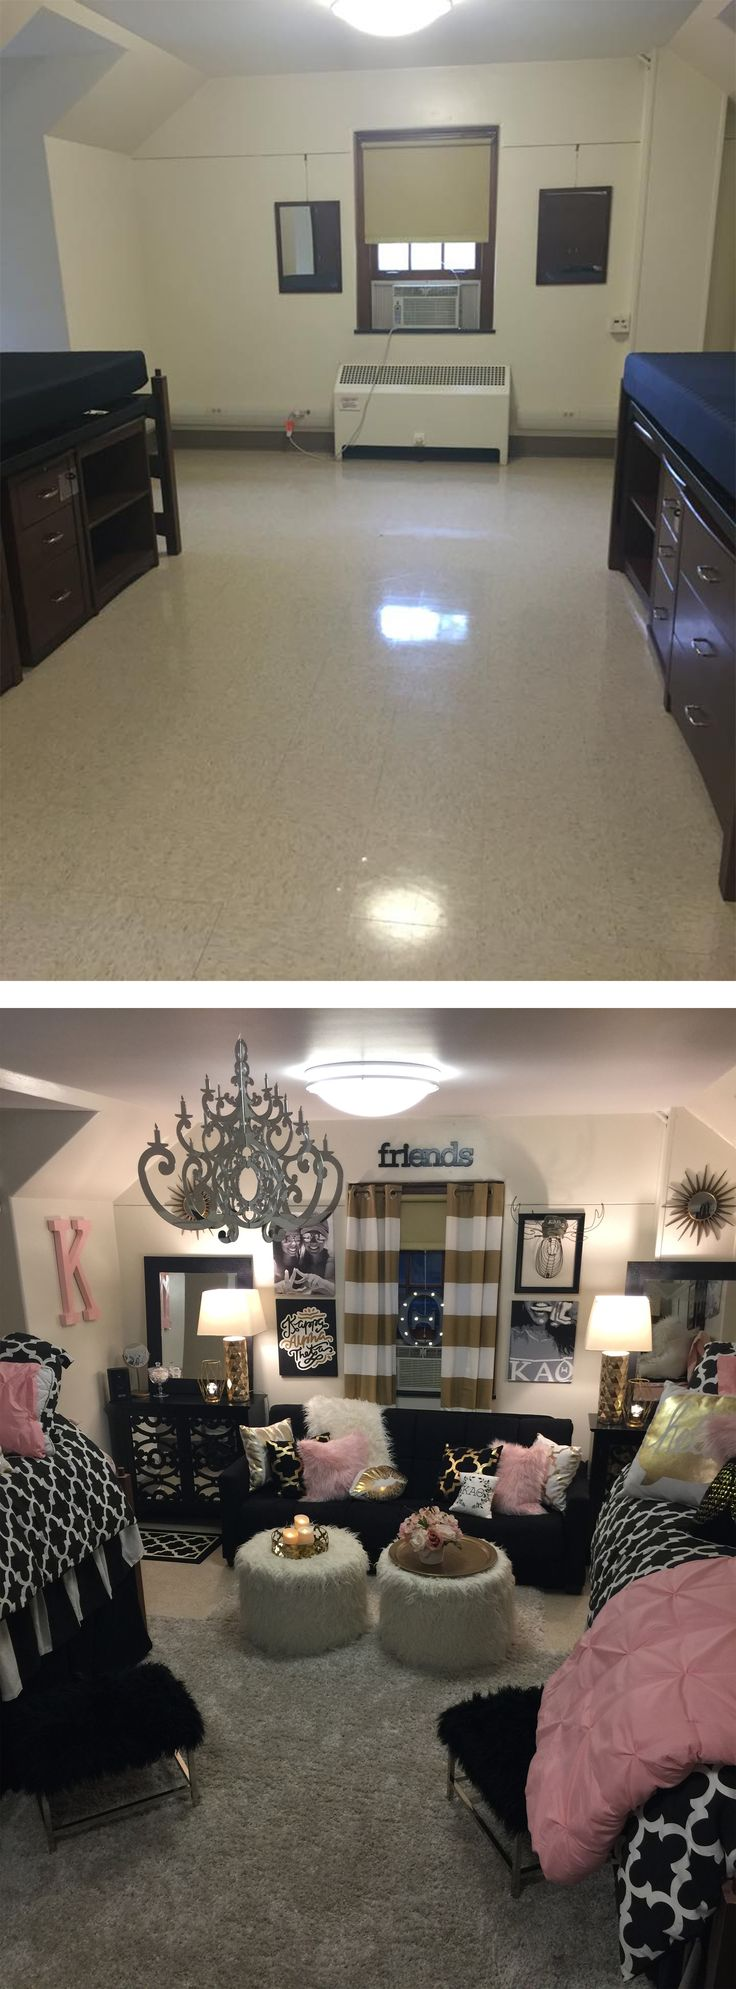 Before and After. Miami University MacCracken Hall.